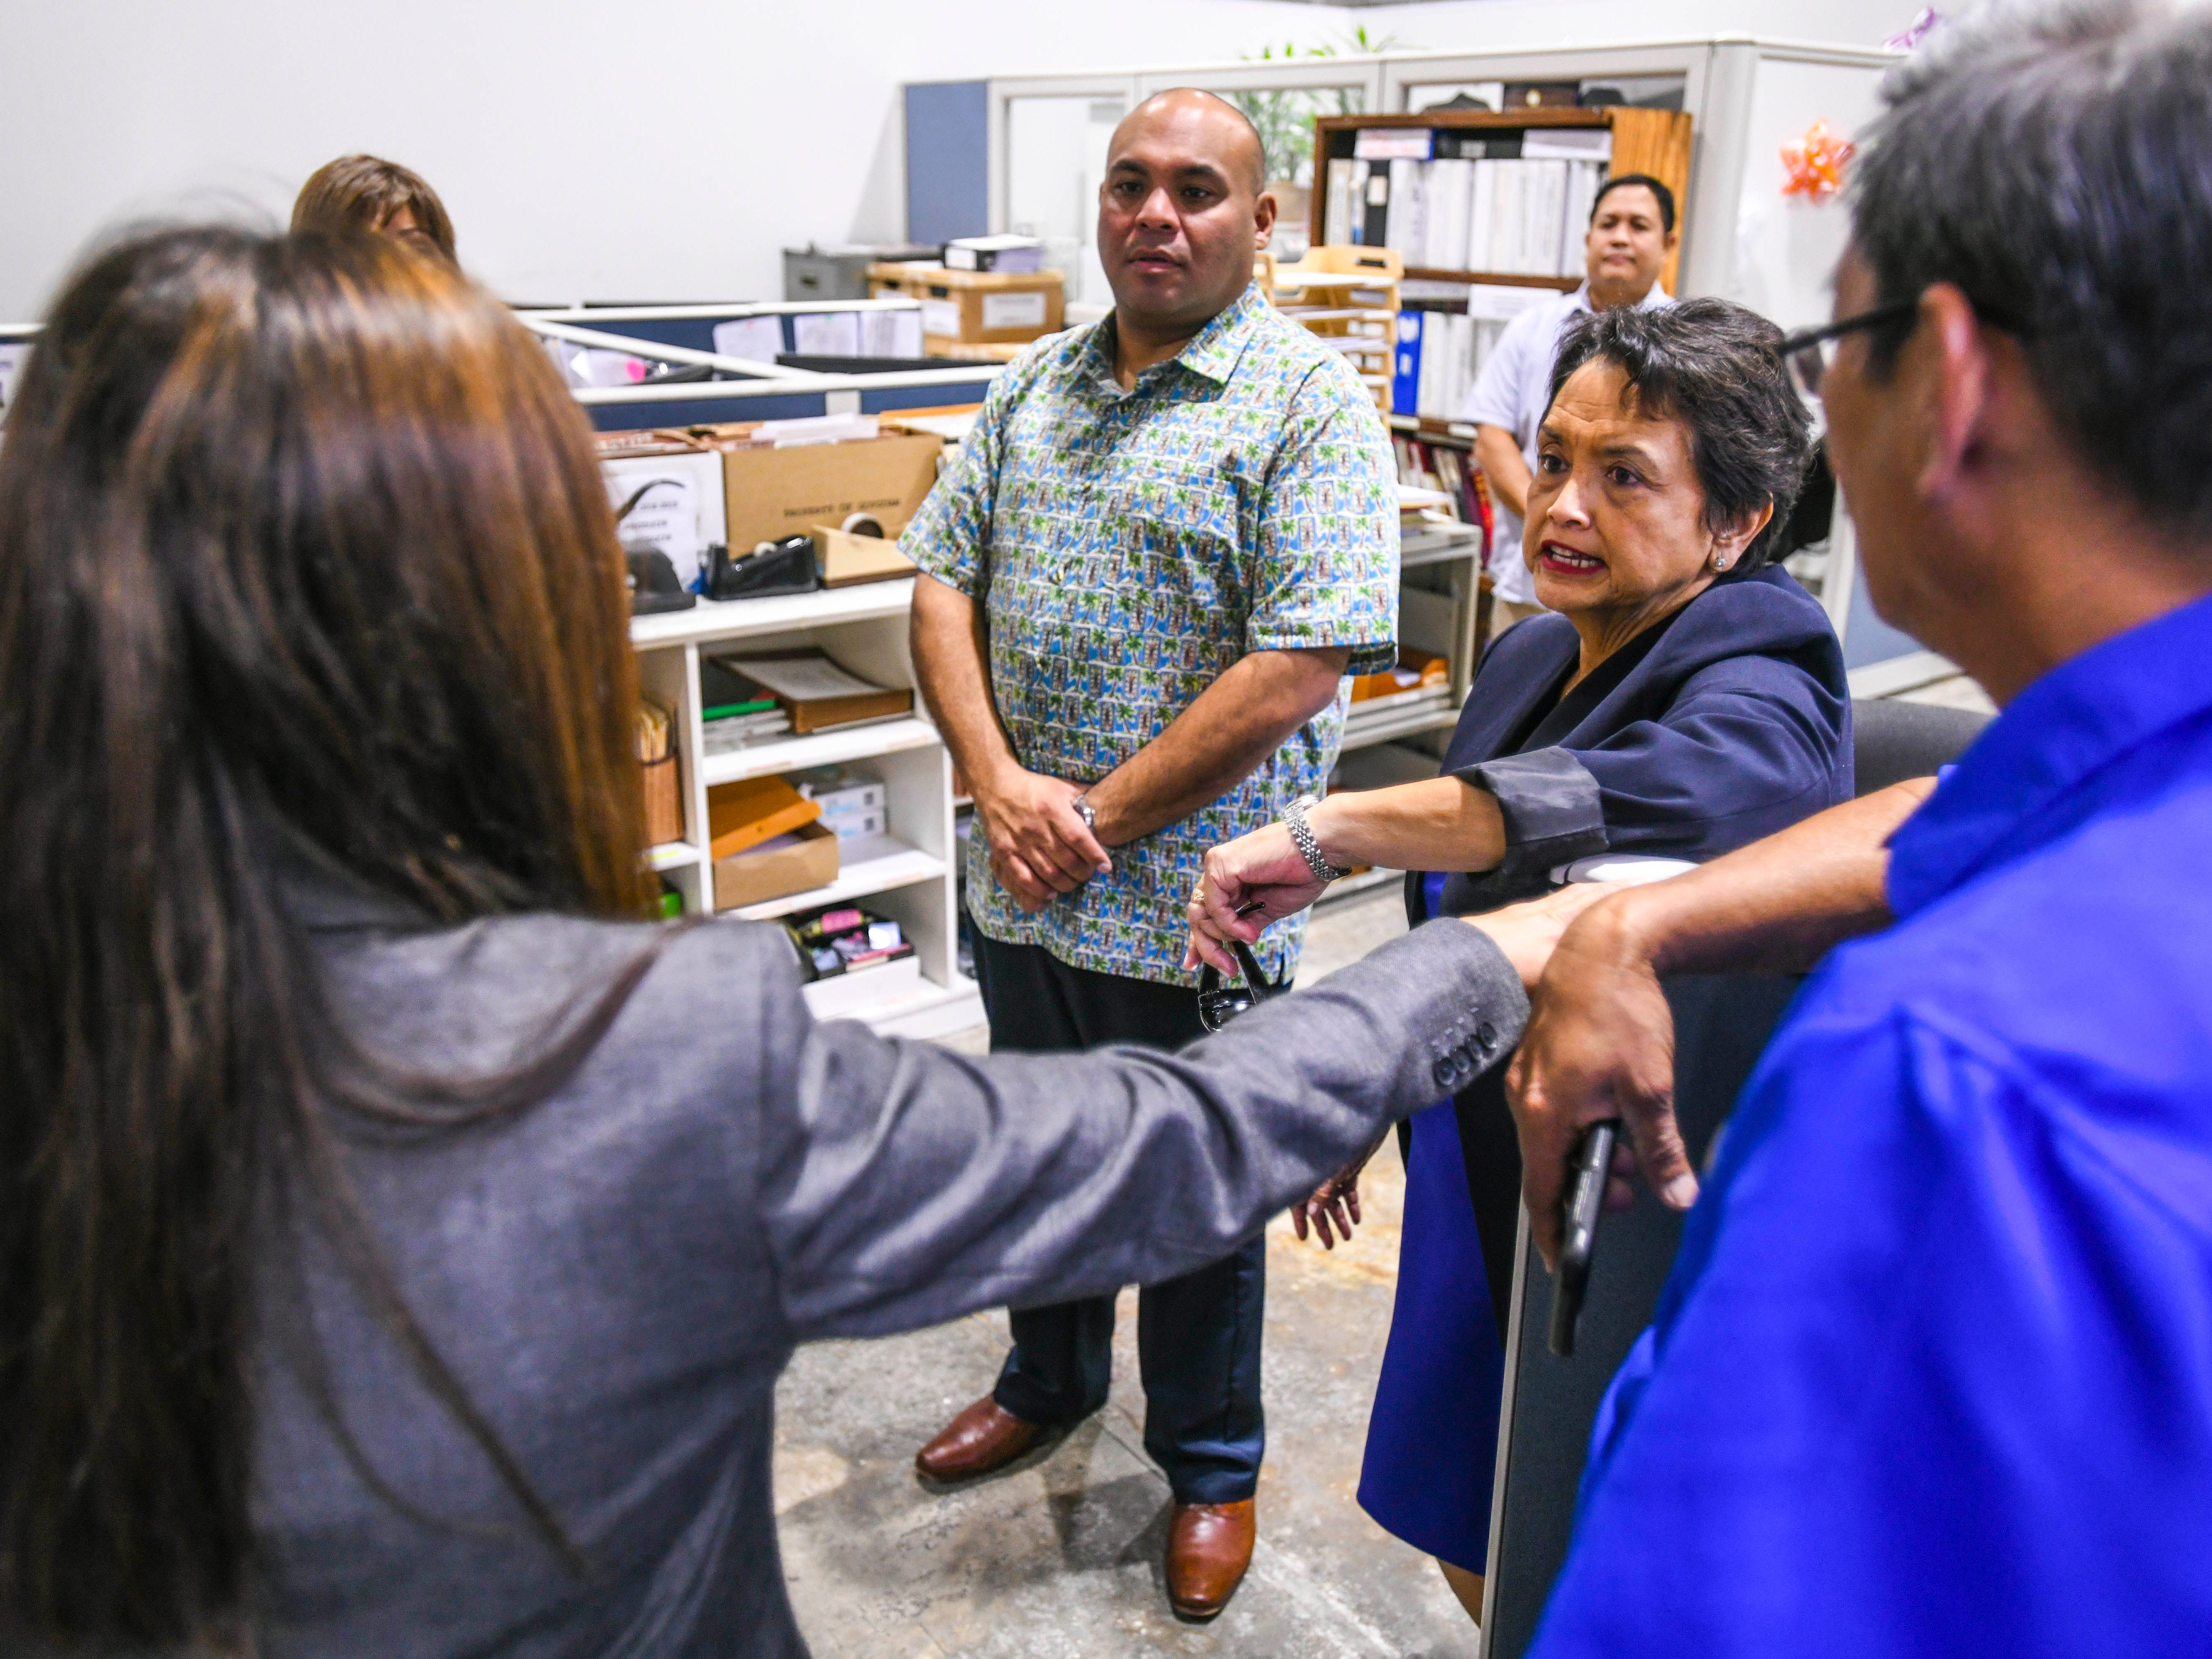 Gov. Lou Leon Guerrero, right, and Lt. Gov. Josh Tenorio, center, direct a question to Dafne Shimizu, Department of Revenue and Taxation acting director, as the new island administrators tour the agency in Barrigada Heights on Tuesday, Jan. 8, 2019.